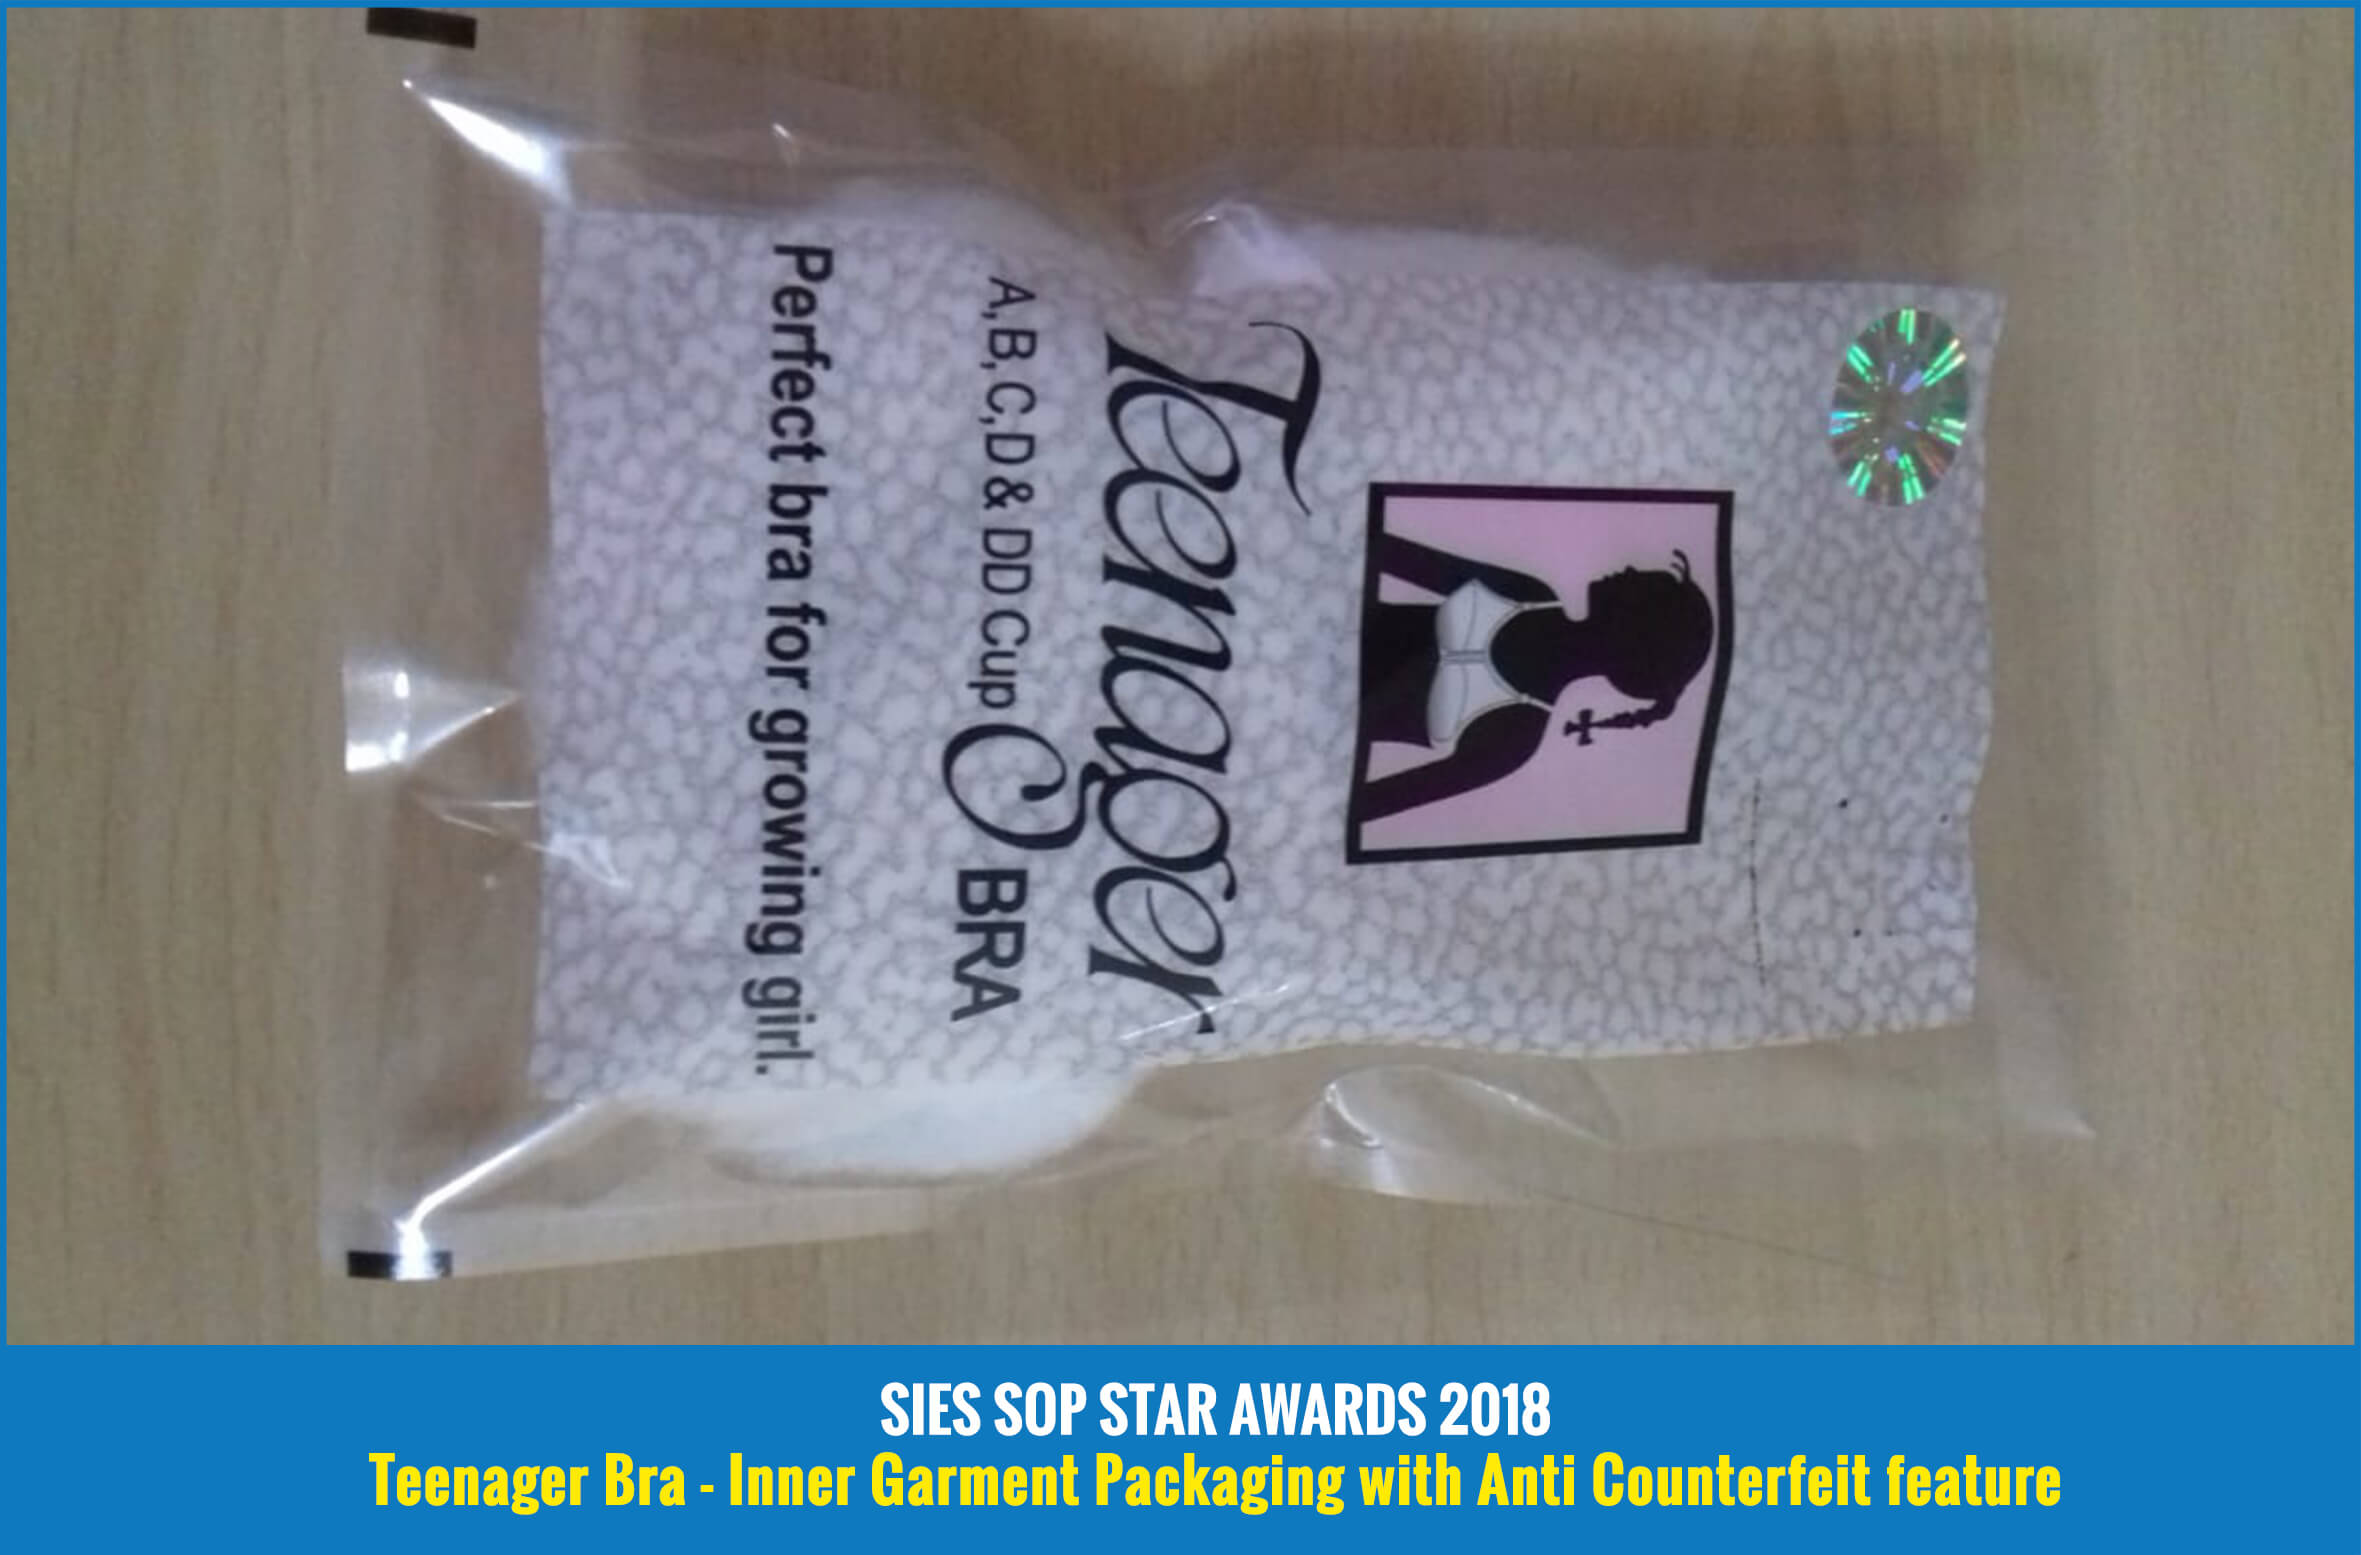 Teenager Bra - Inner Garment Packaging with Anti Counterfeit feature